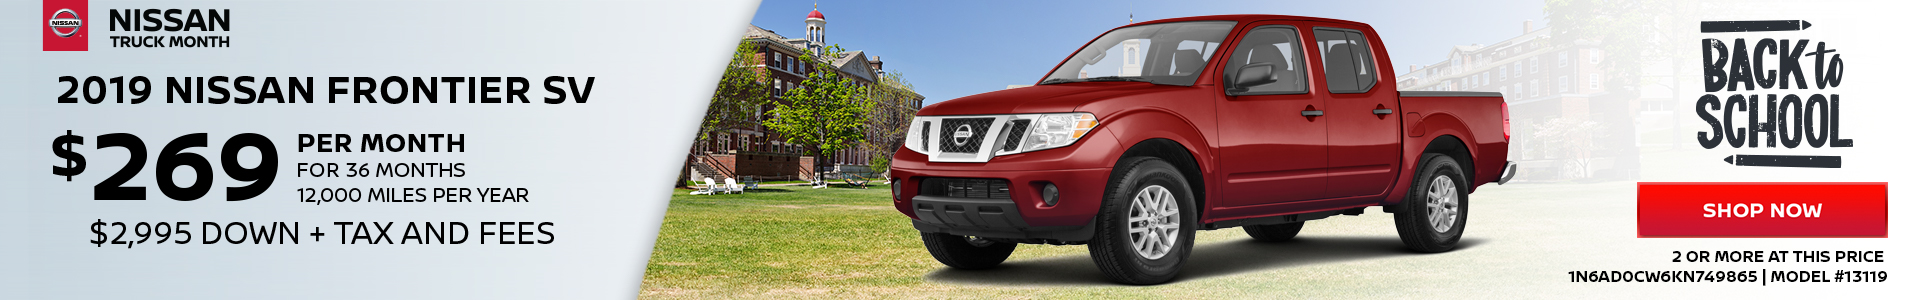 Nissan Frontier $269 Lease